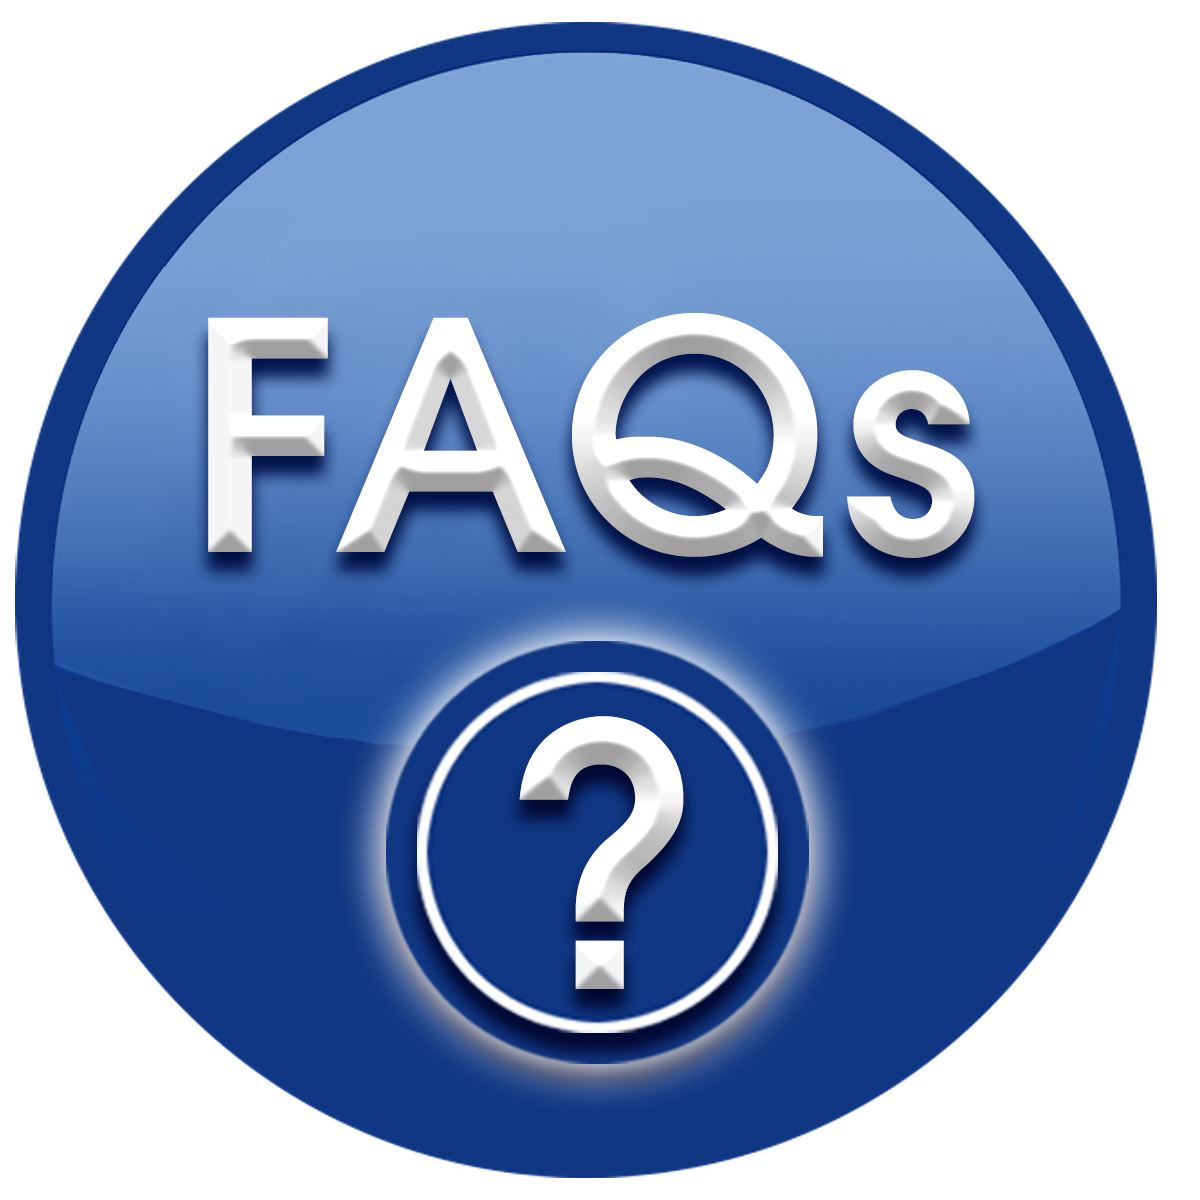 FAQs Icon for Frequently Asked Questions